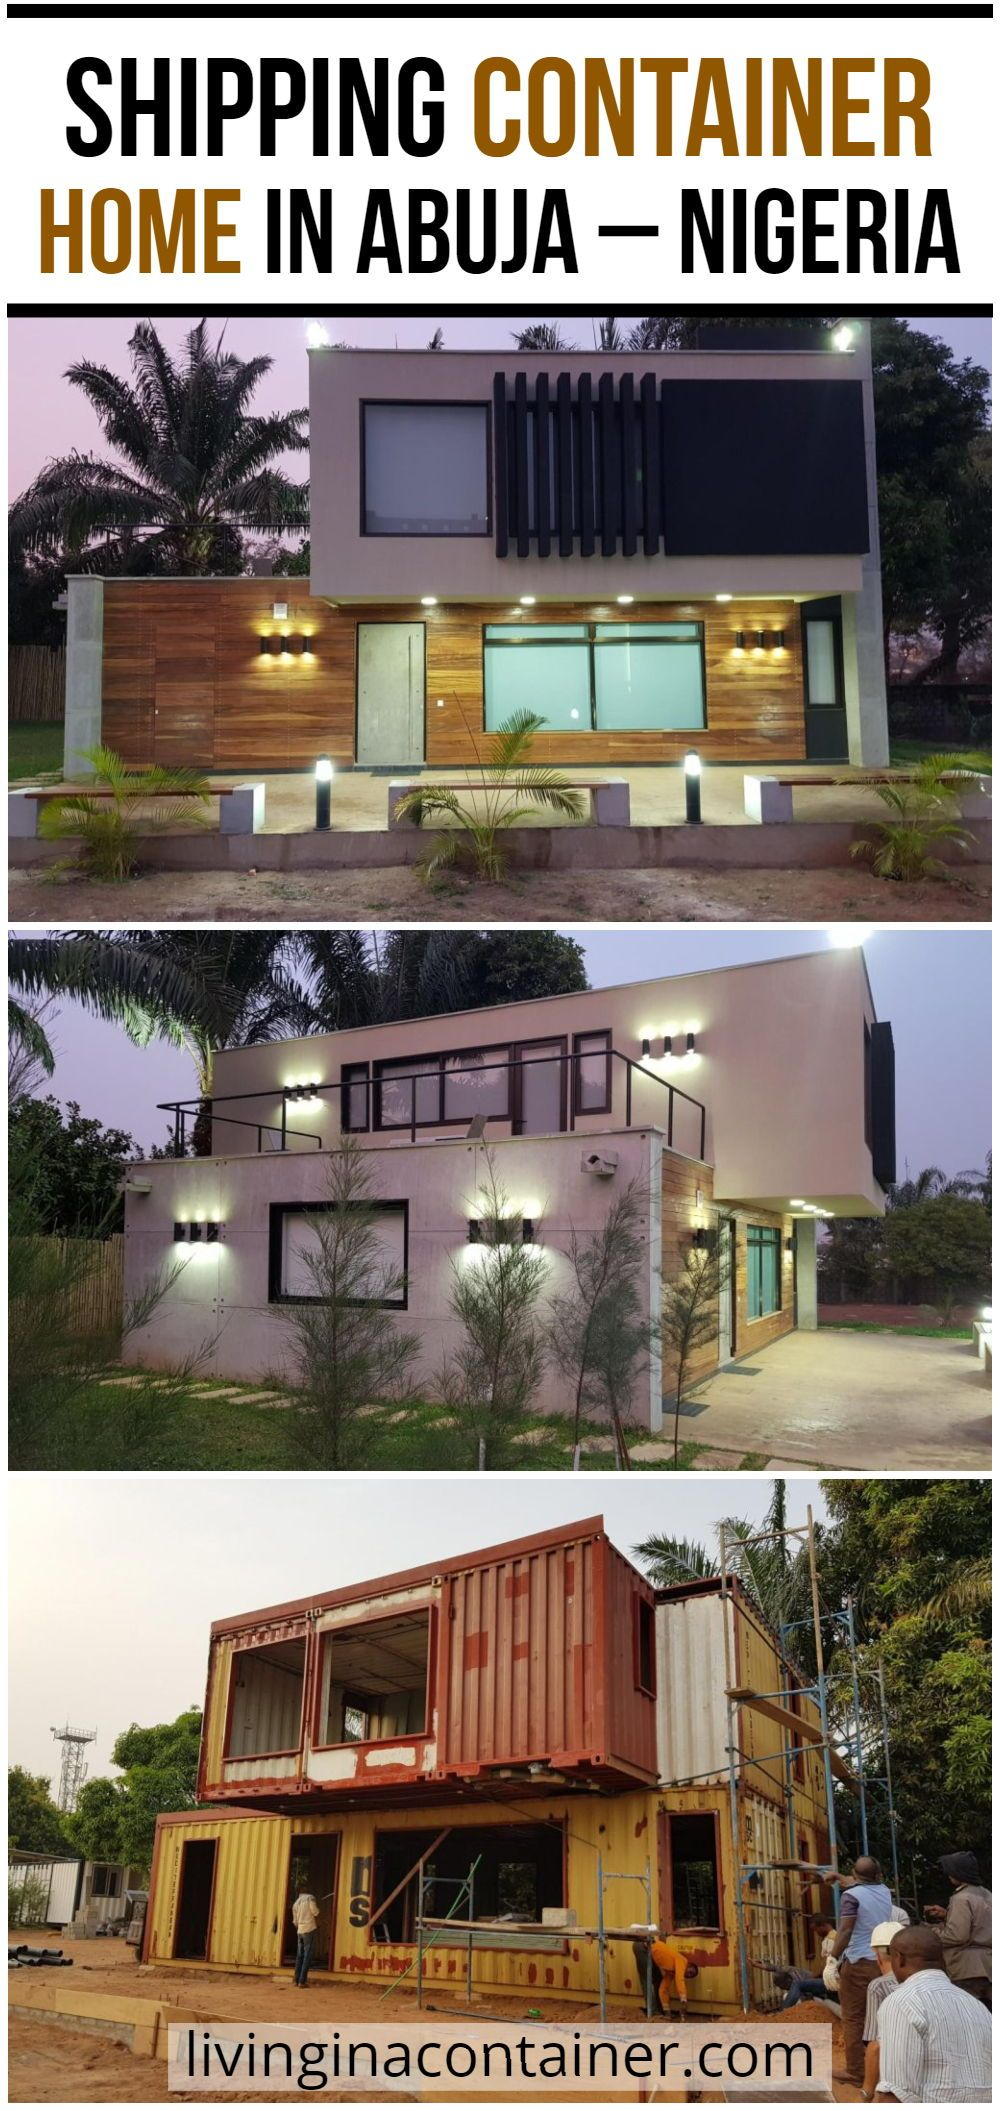 Shipping Container Home In Abuja Nigeria Container House Shipping Container Homes Shipping Container